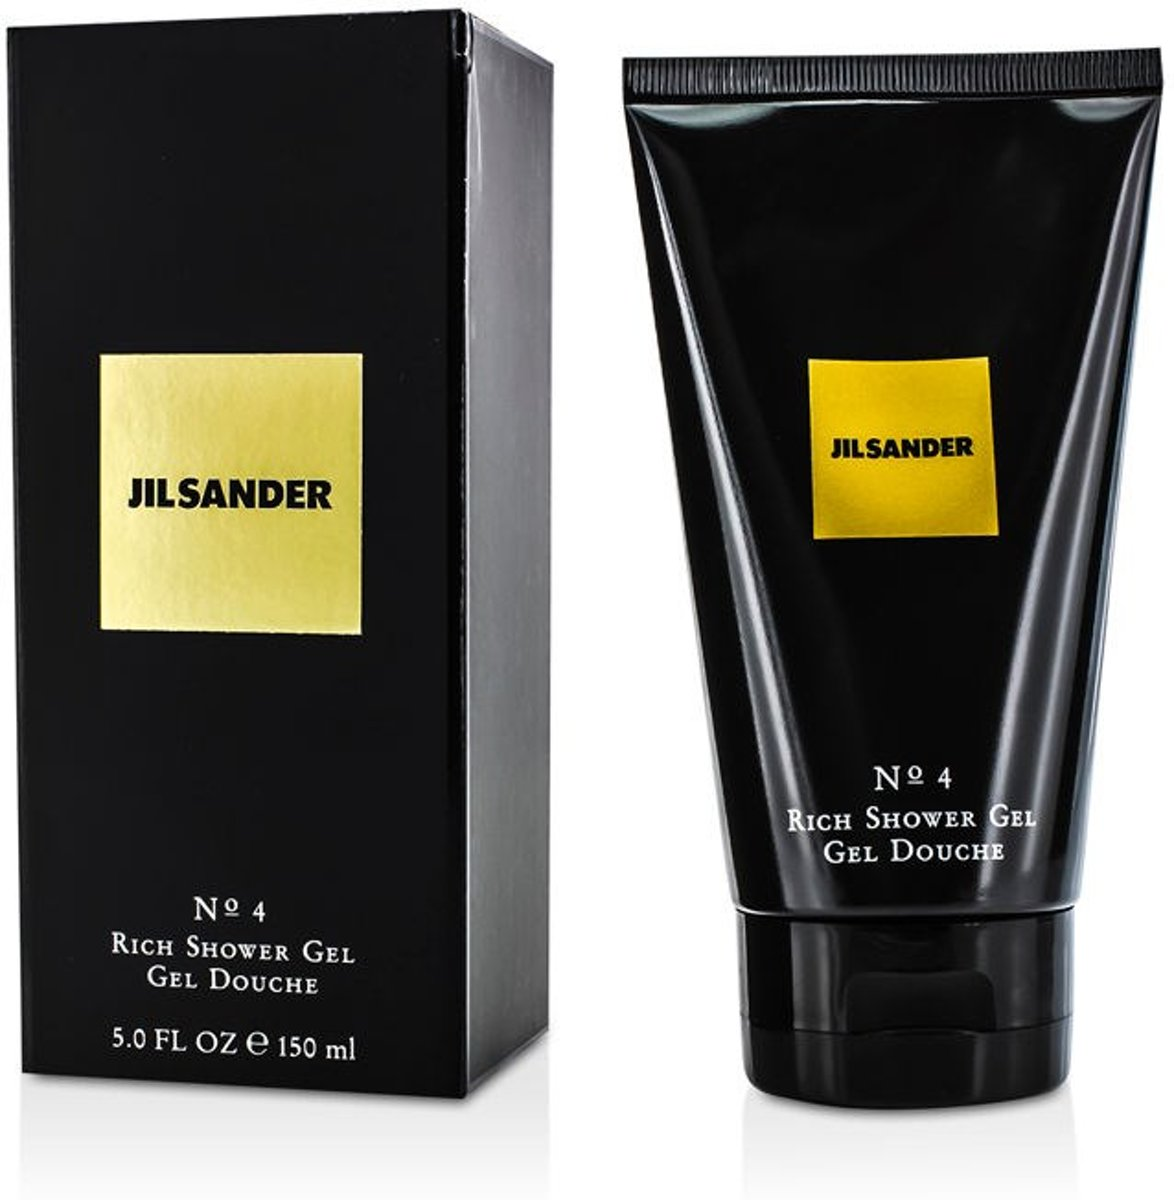 Jil Sander No 4 douche gel 150 ml